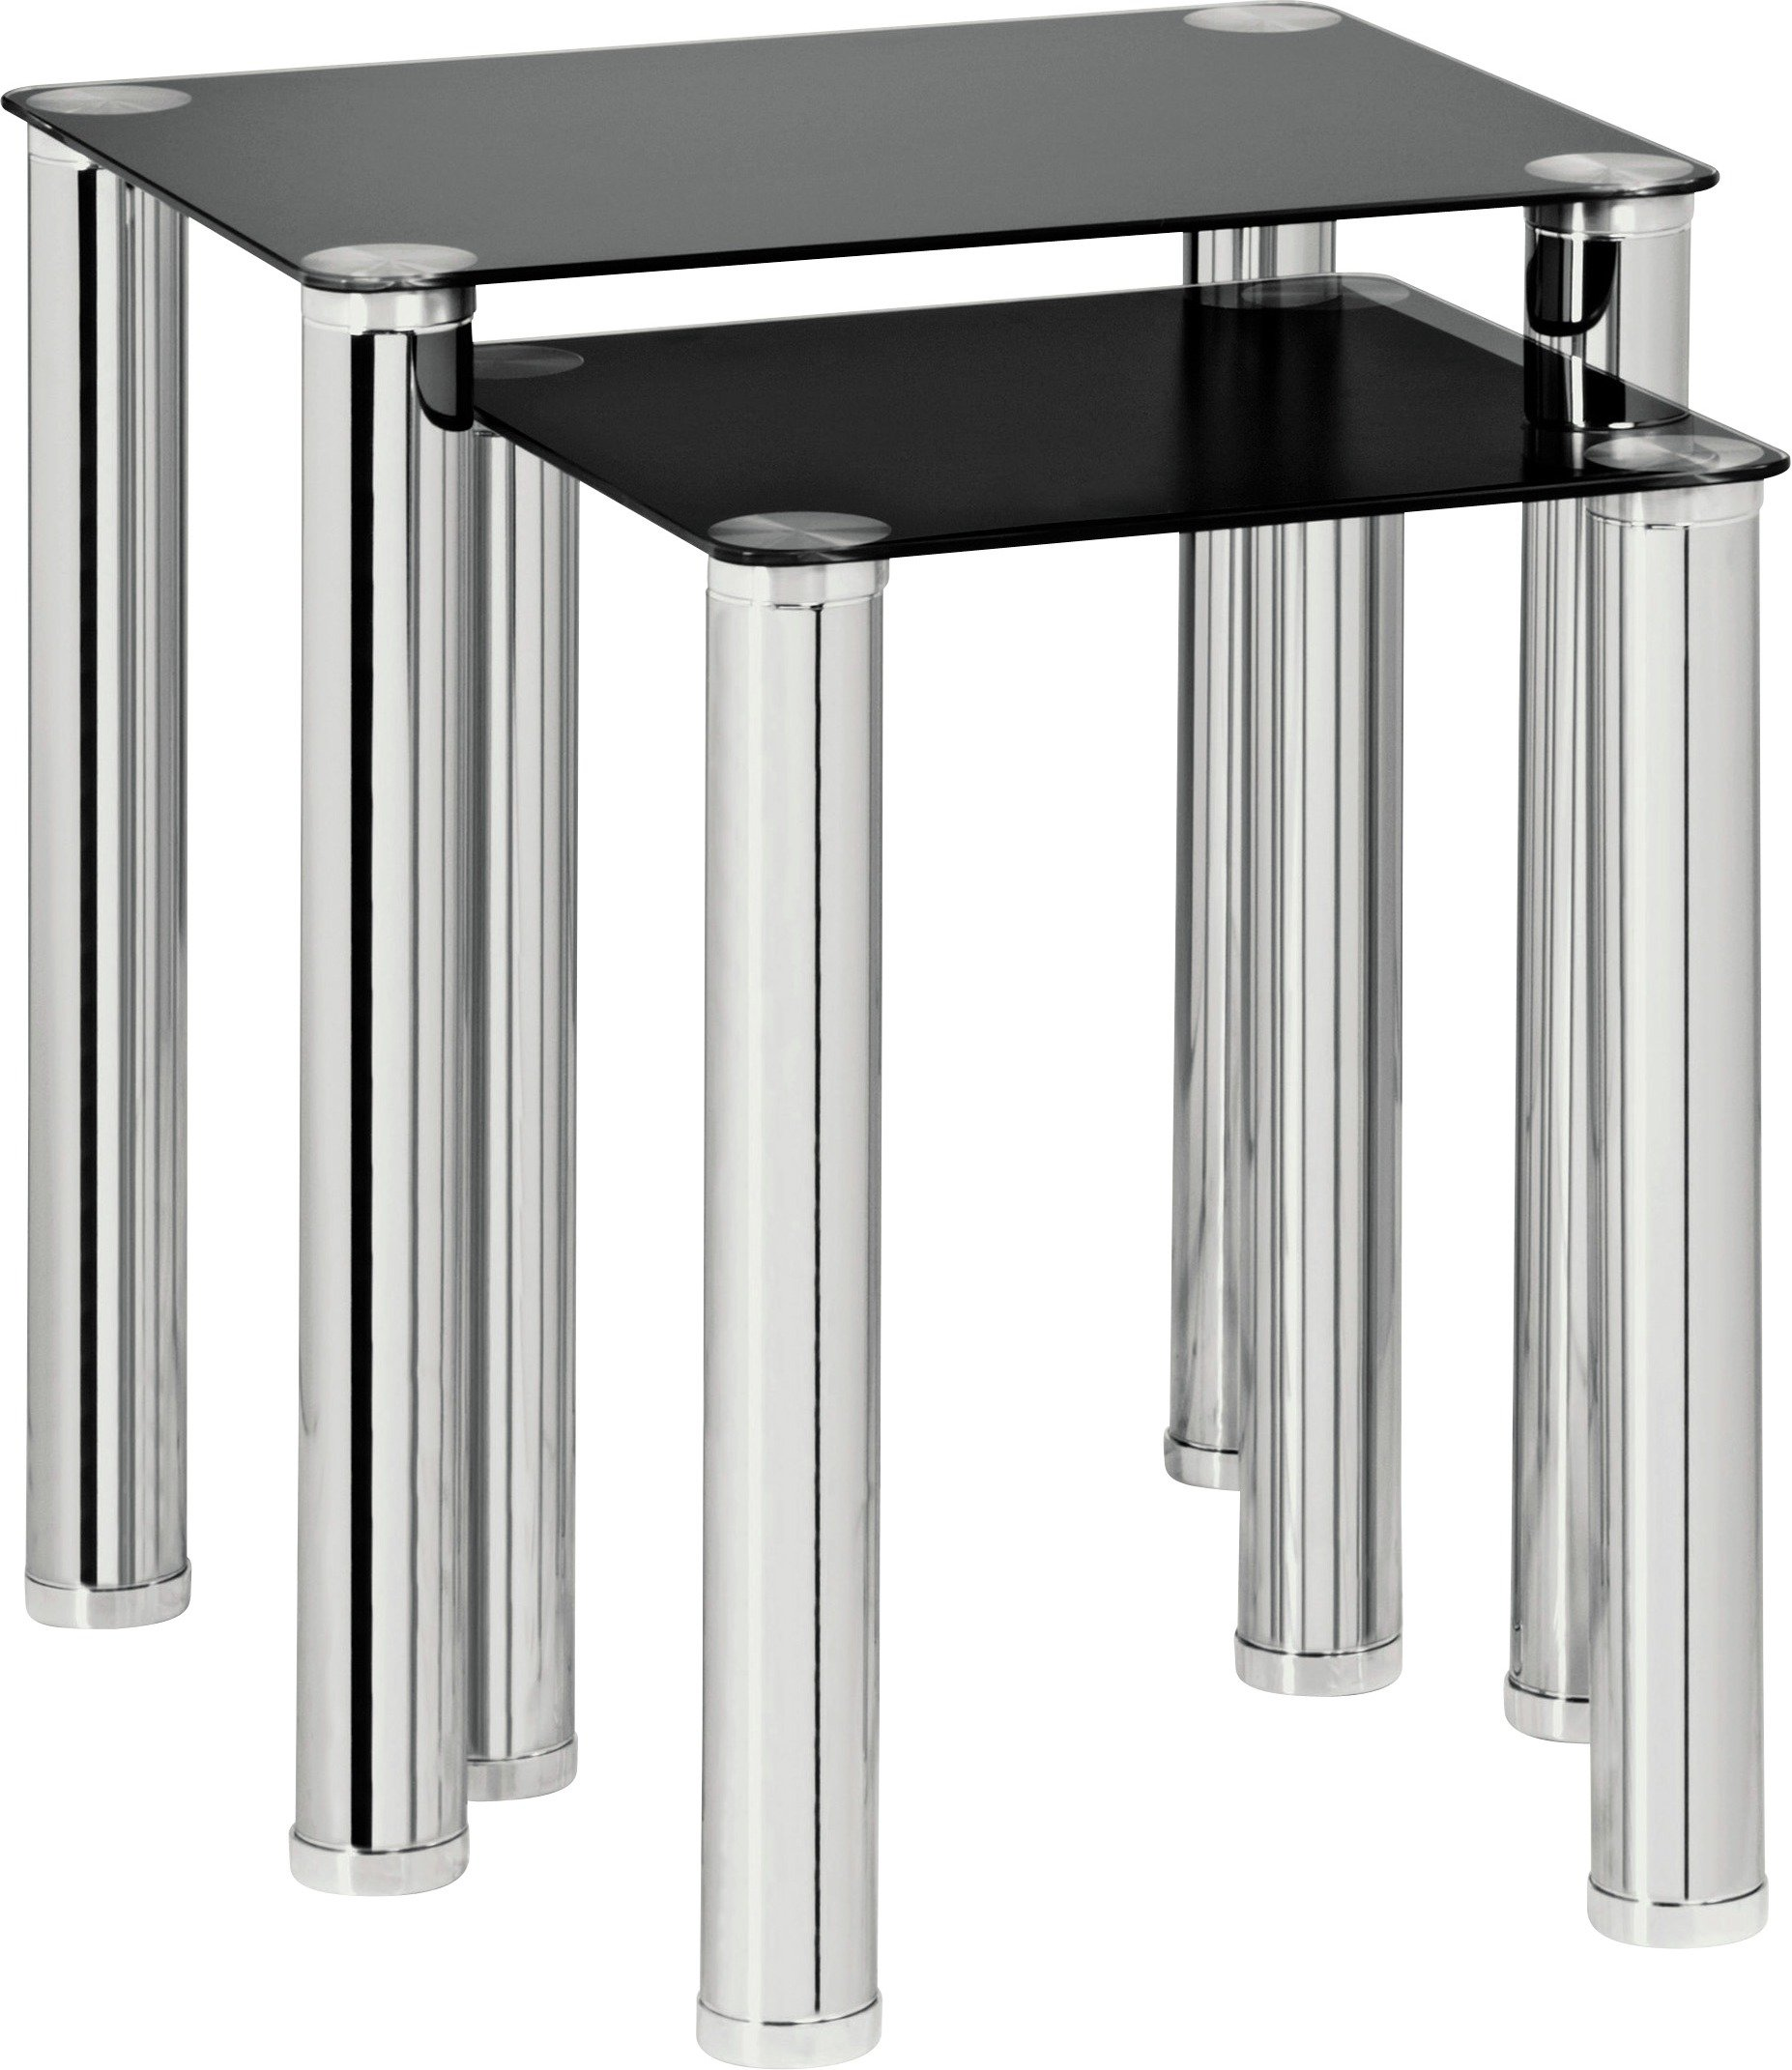 Black Glass Tables buy home matrix nest of 2 tables - black glass at argos.co.uk